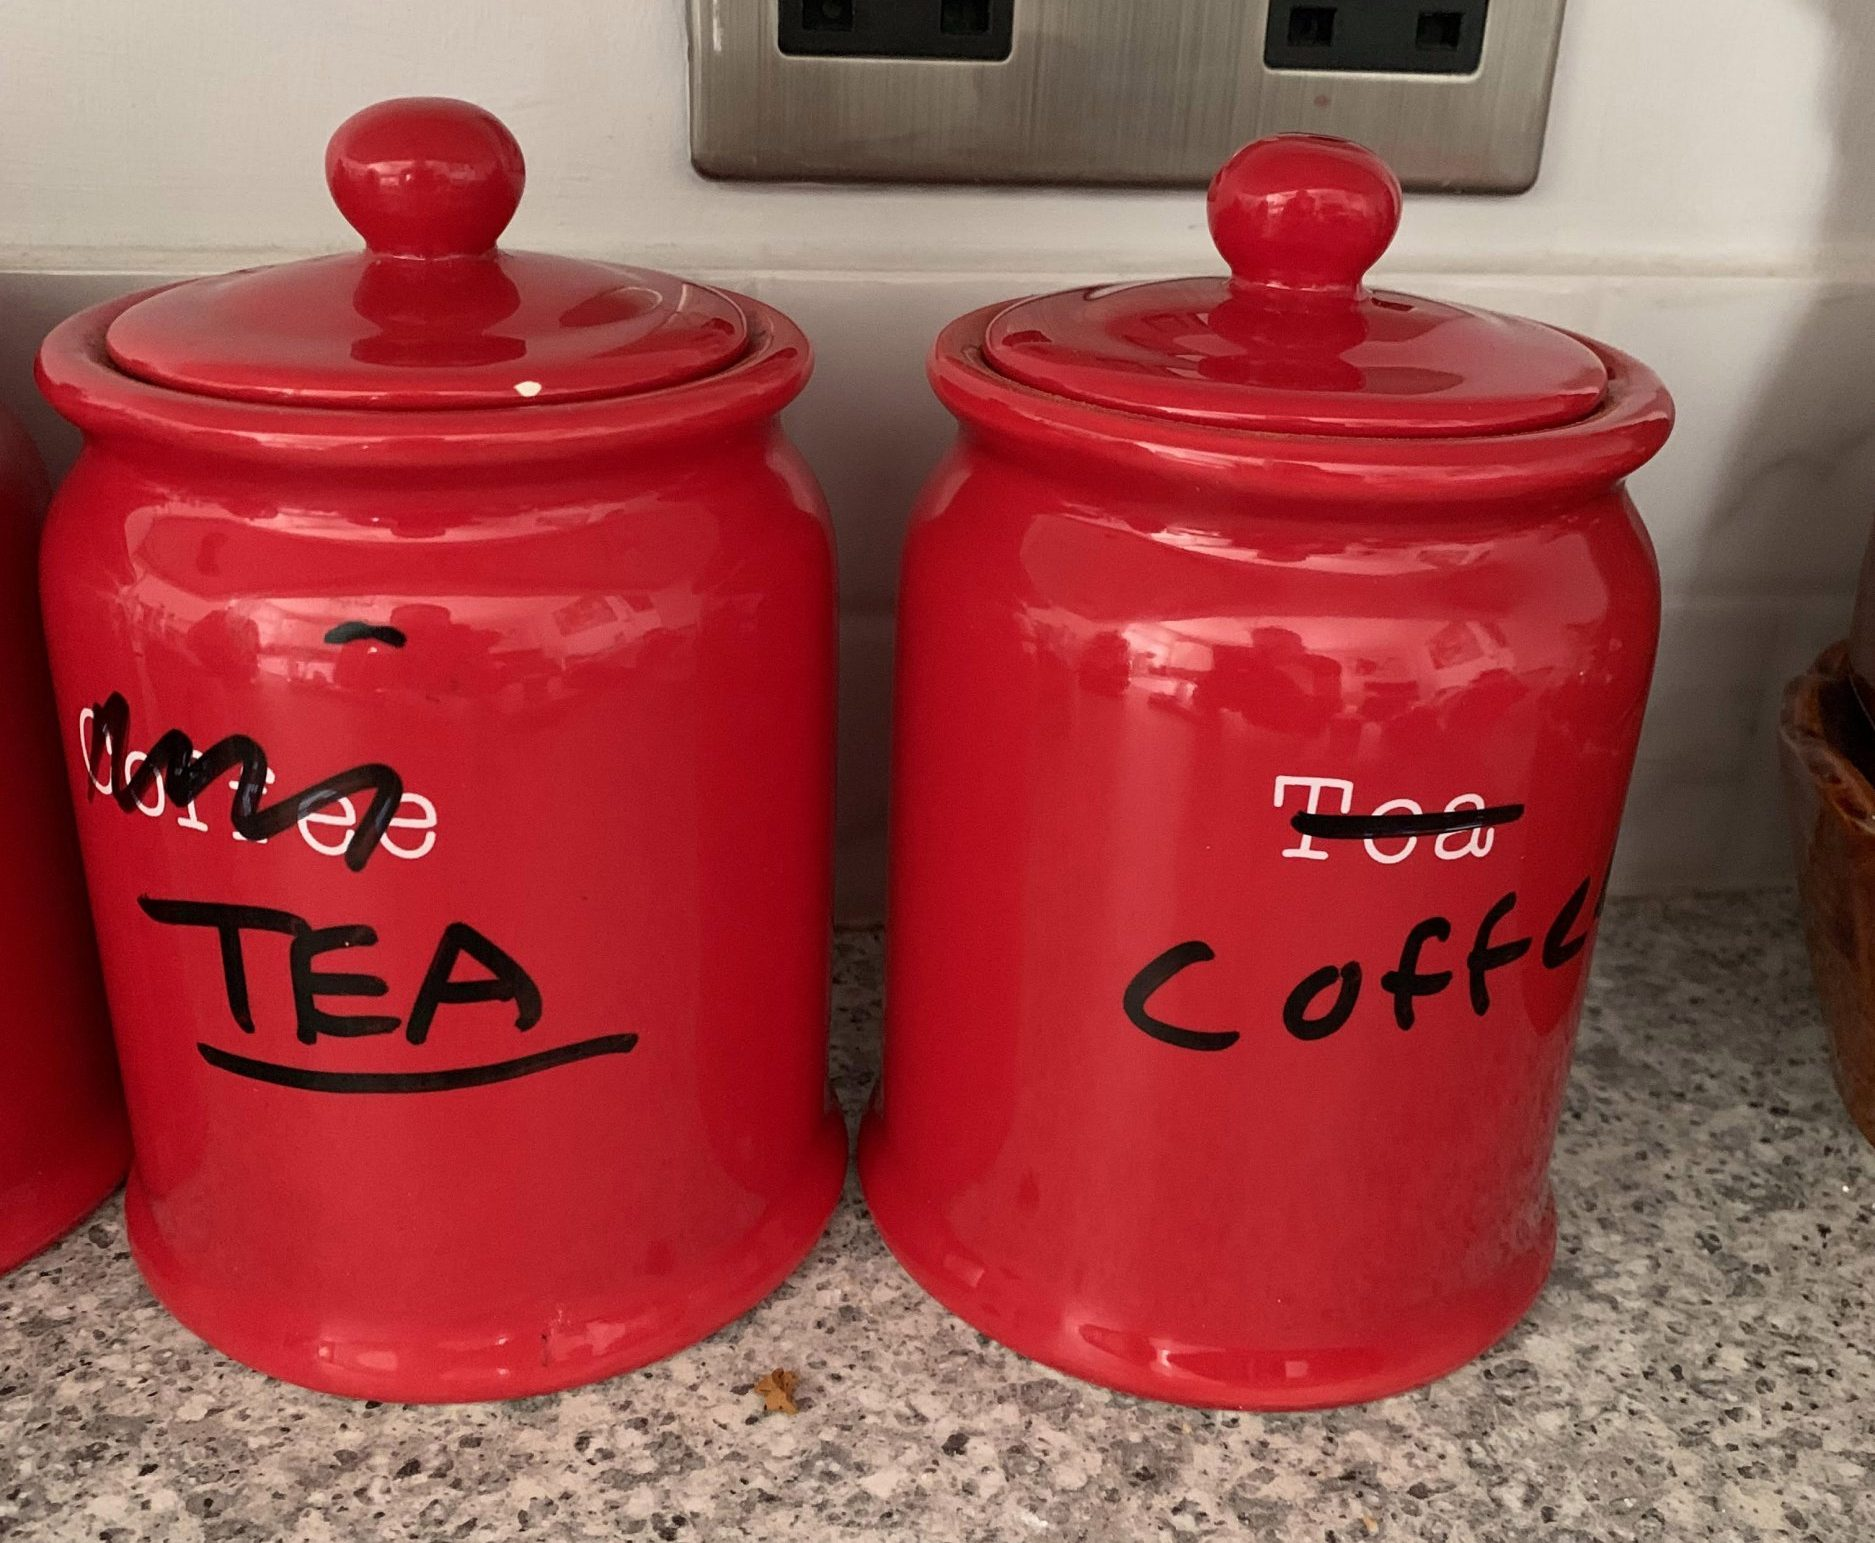 Mum put tea and coffee into wrong jars so this is how she fixed the problem